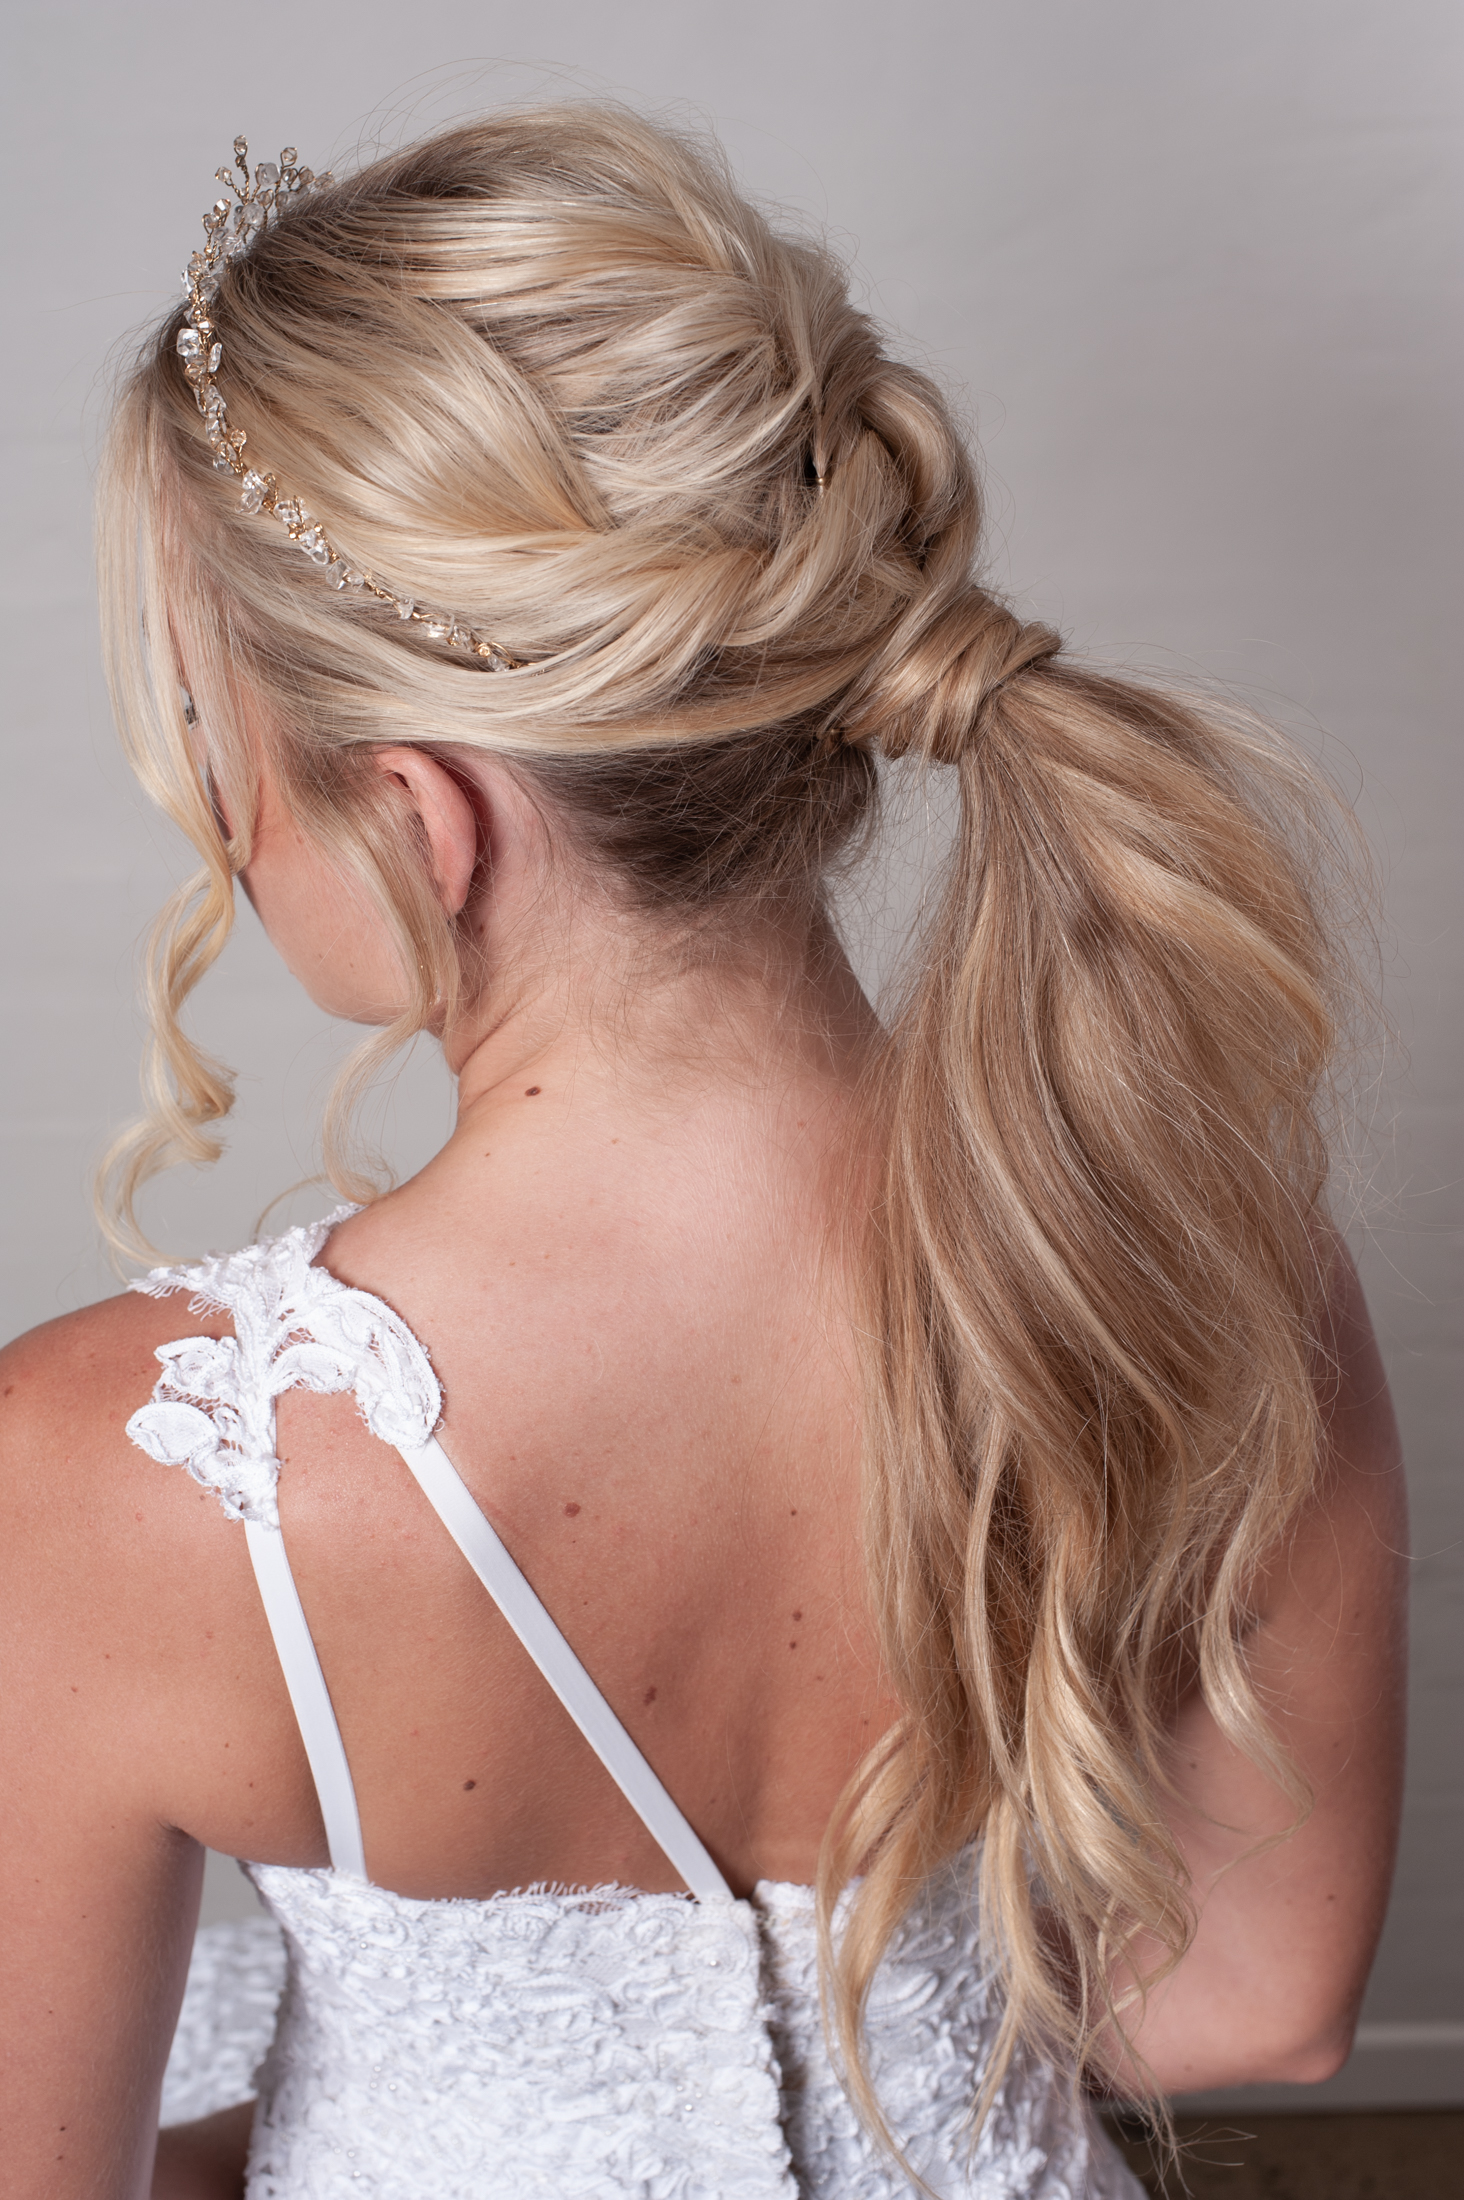 - I absolutely love a textured ponytail for a bride, is ultra modern and very confortable too! It goes very well with a beautiful tiara and the veil can be applied just on top of the pony.